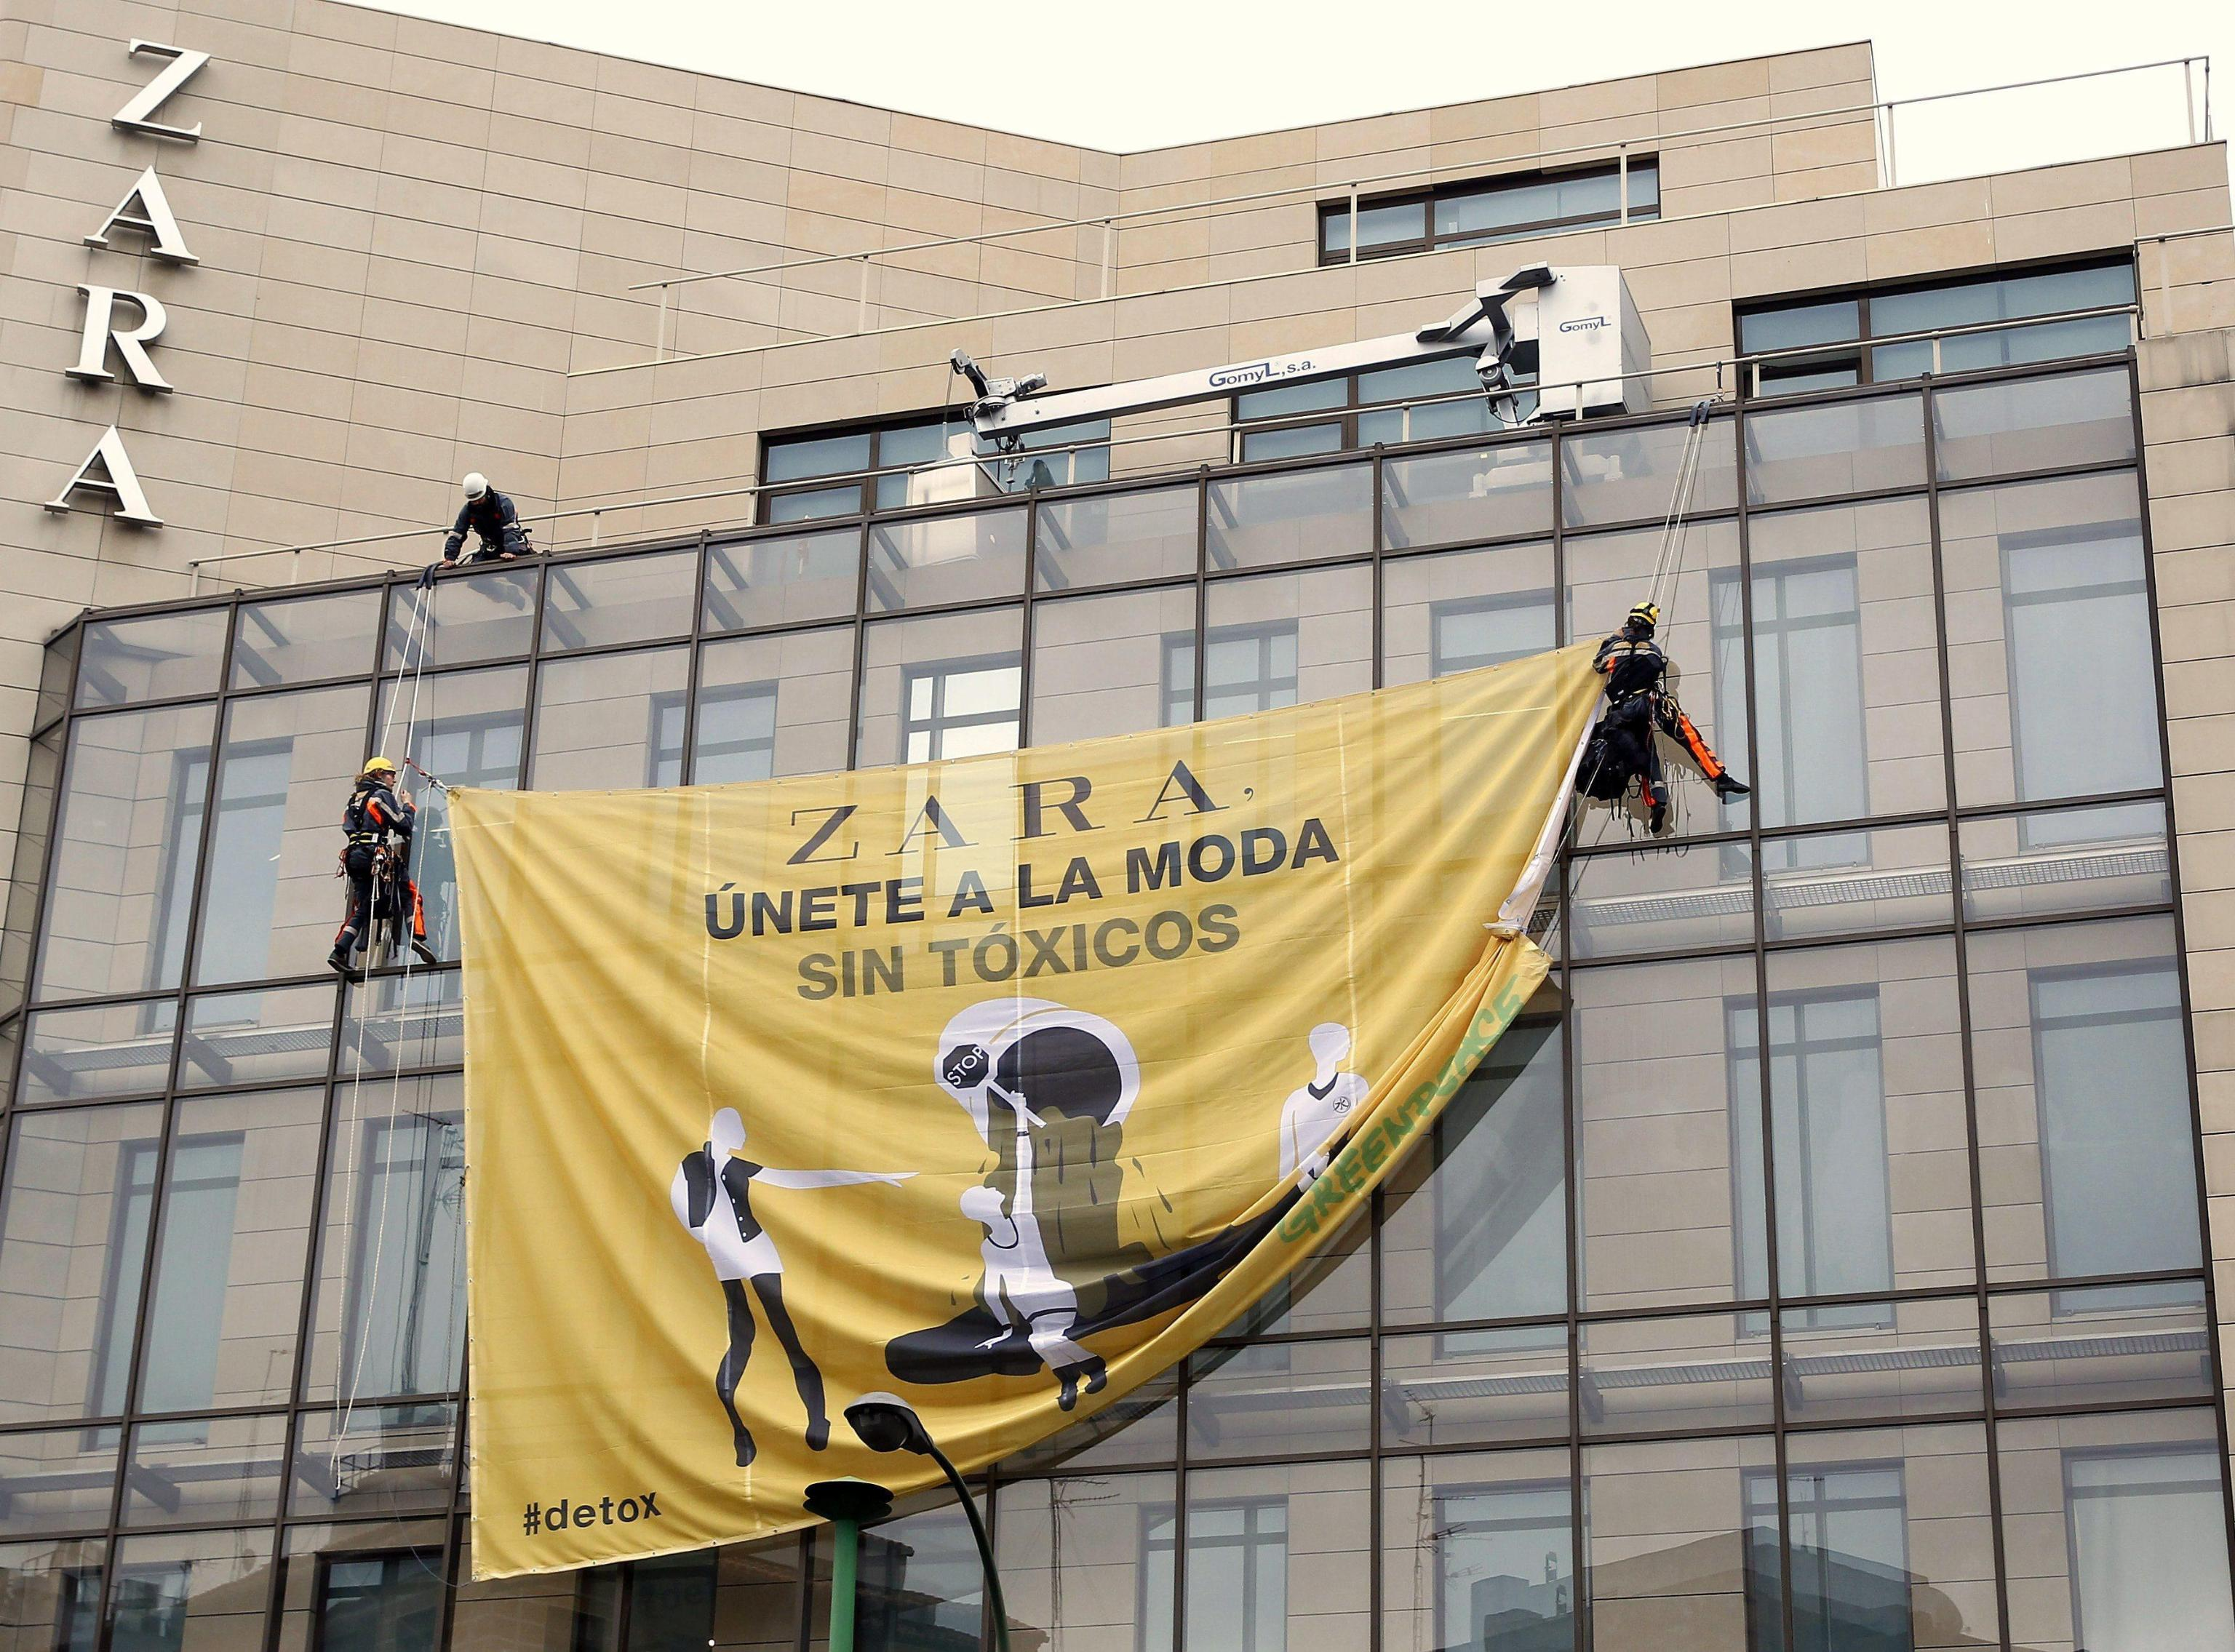 Greenpeace activists protest against the 'use of toxic chemicals' in garments